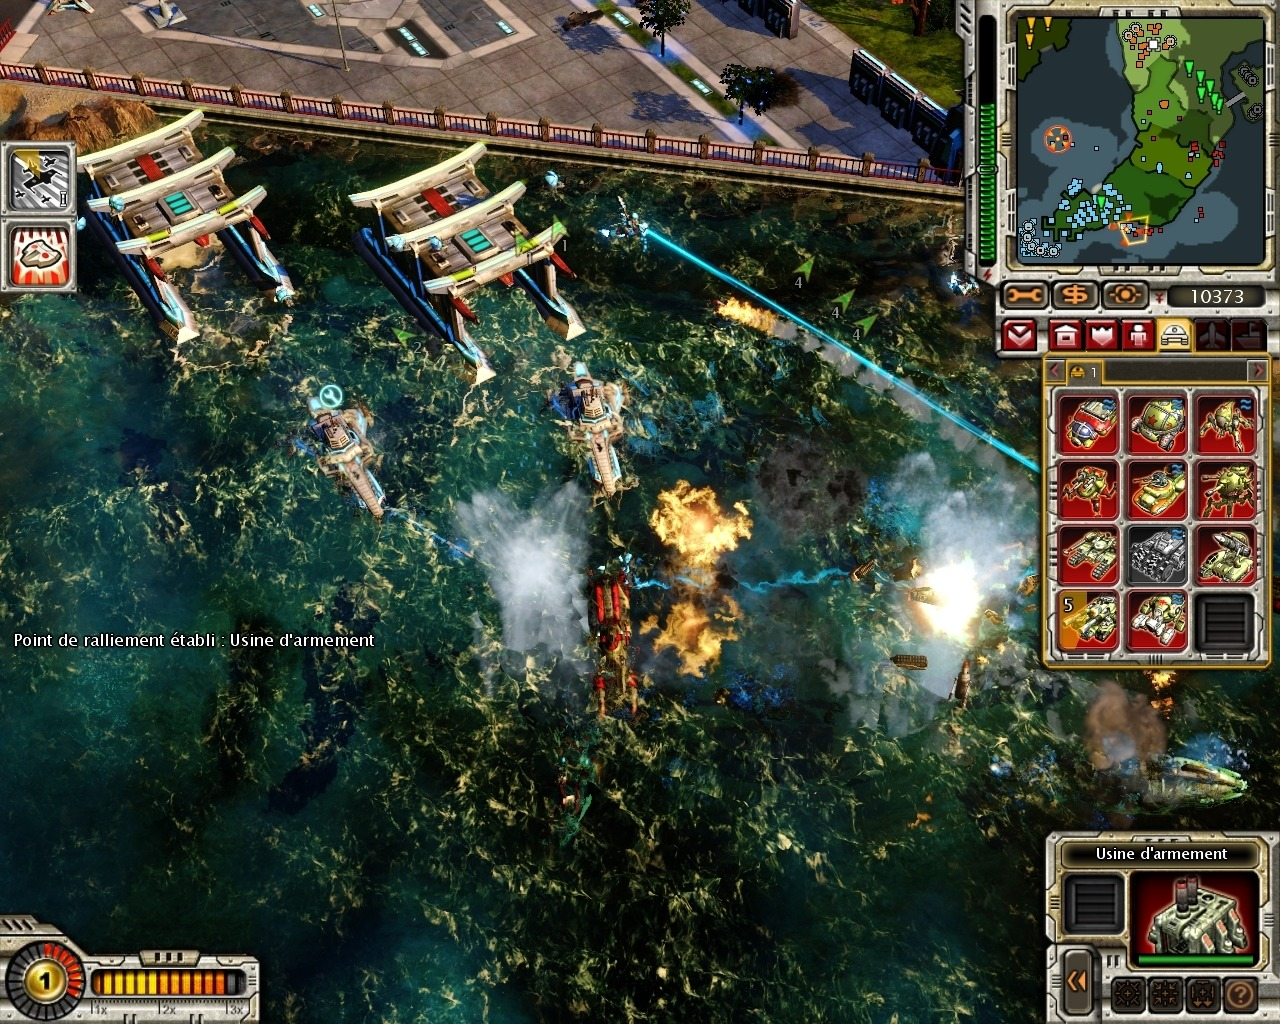 Command and Conquer: Red Alert 3 - Uprising ScreenShot